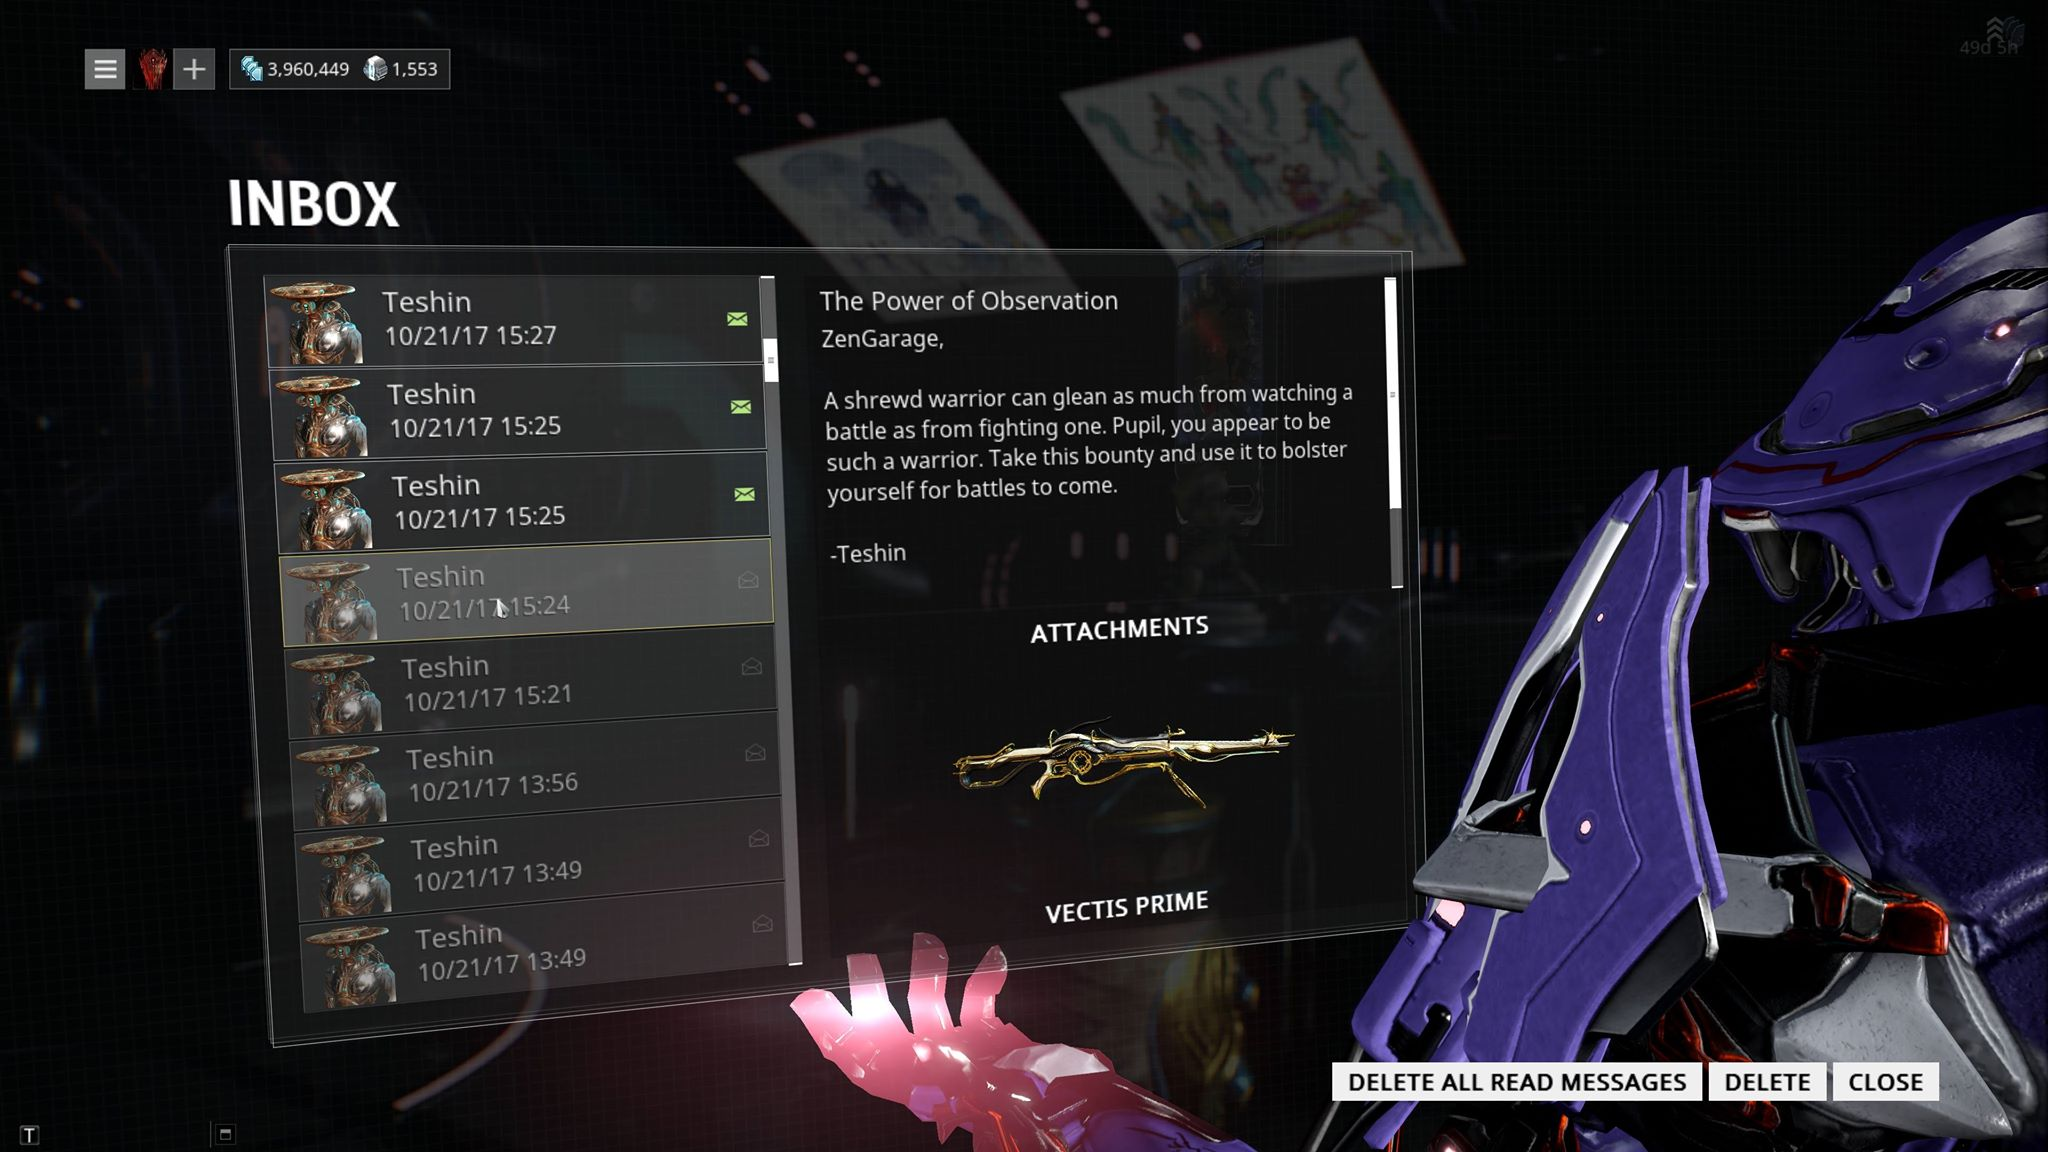 I got the VECTIS PRIME from a Twitch Drop! - Players helping